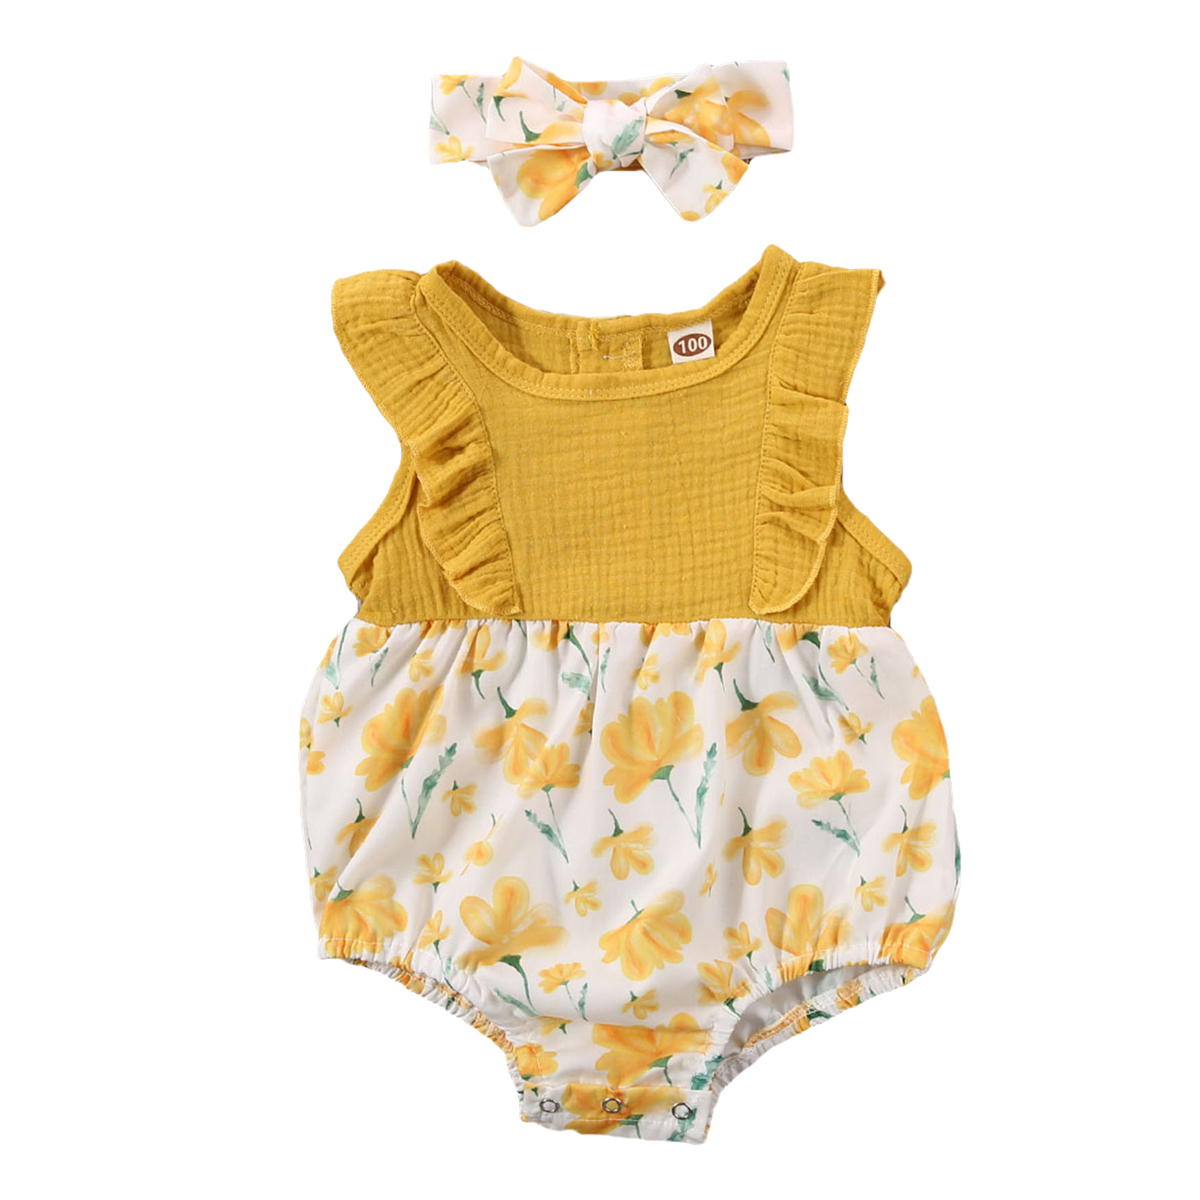 3-24M Newborn Infant Baby Girls Flower Romper Ruffles Jumpsuit Playsuit Summer Baby Girl Clothes Costumes Sunsuit